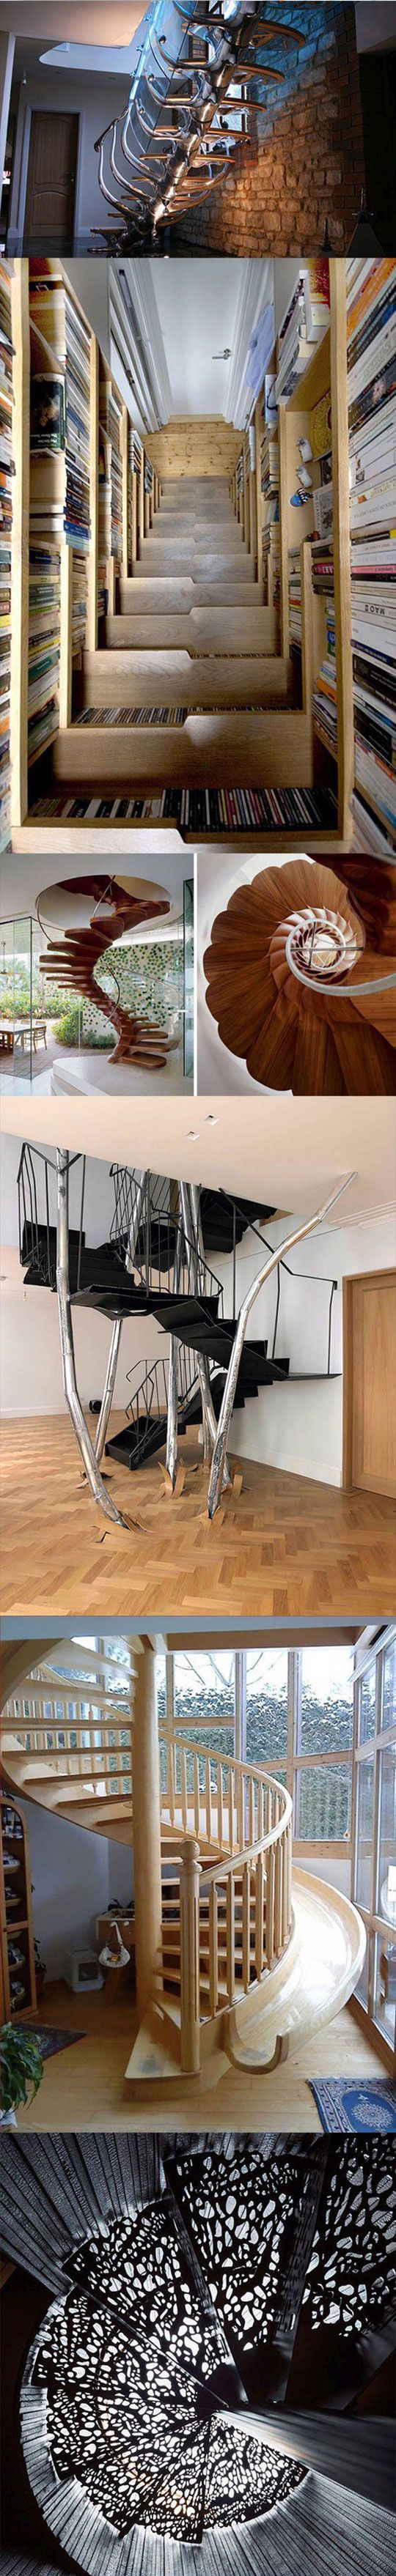 Some stinkin' awesome stairs...